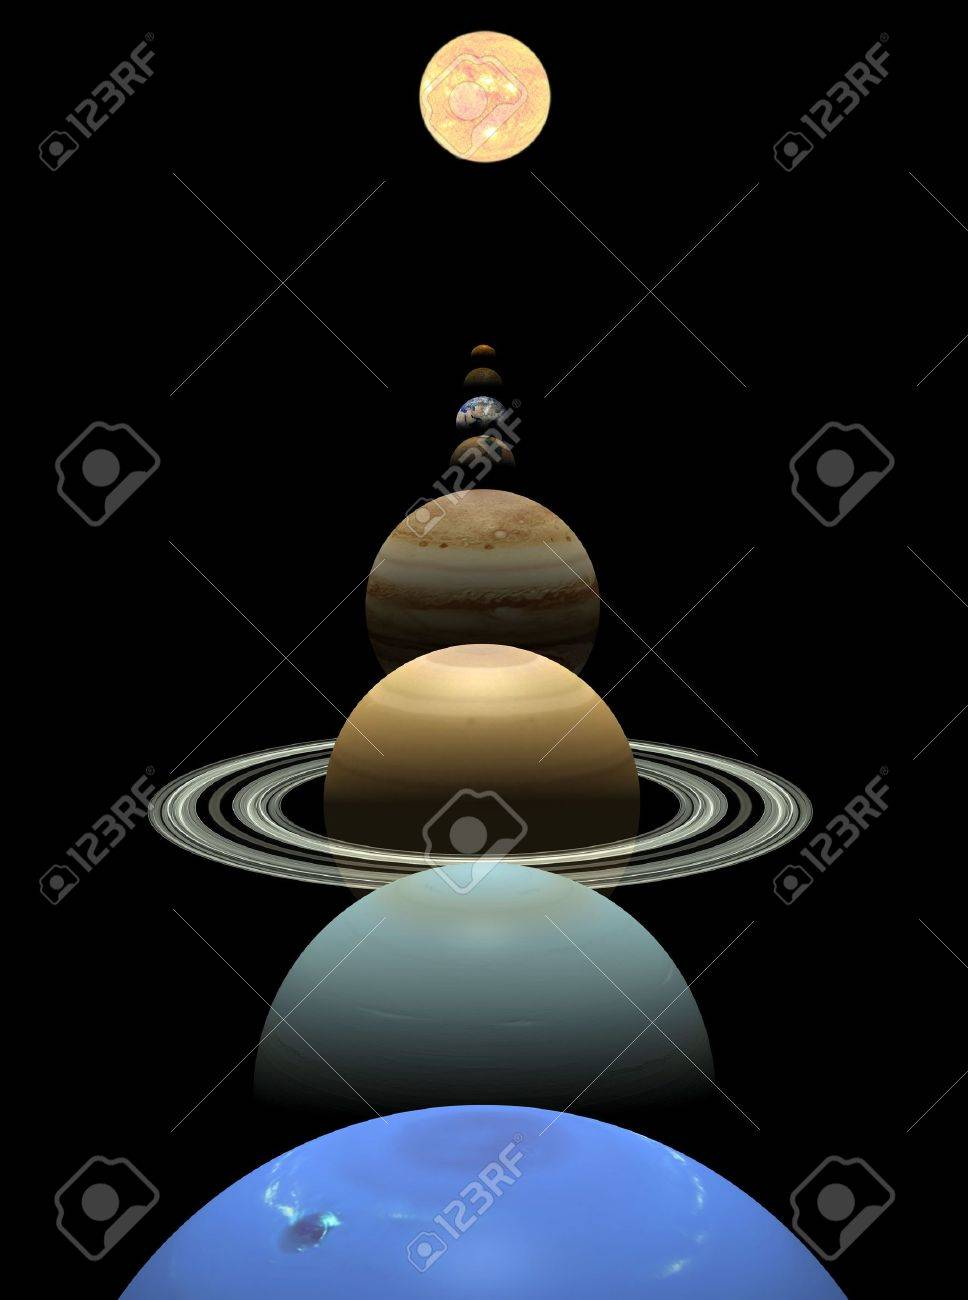 Background image align - All 8 Planets Shown In Alignment On A Black Background Stock Photo 7820496